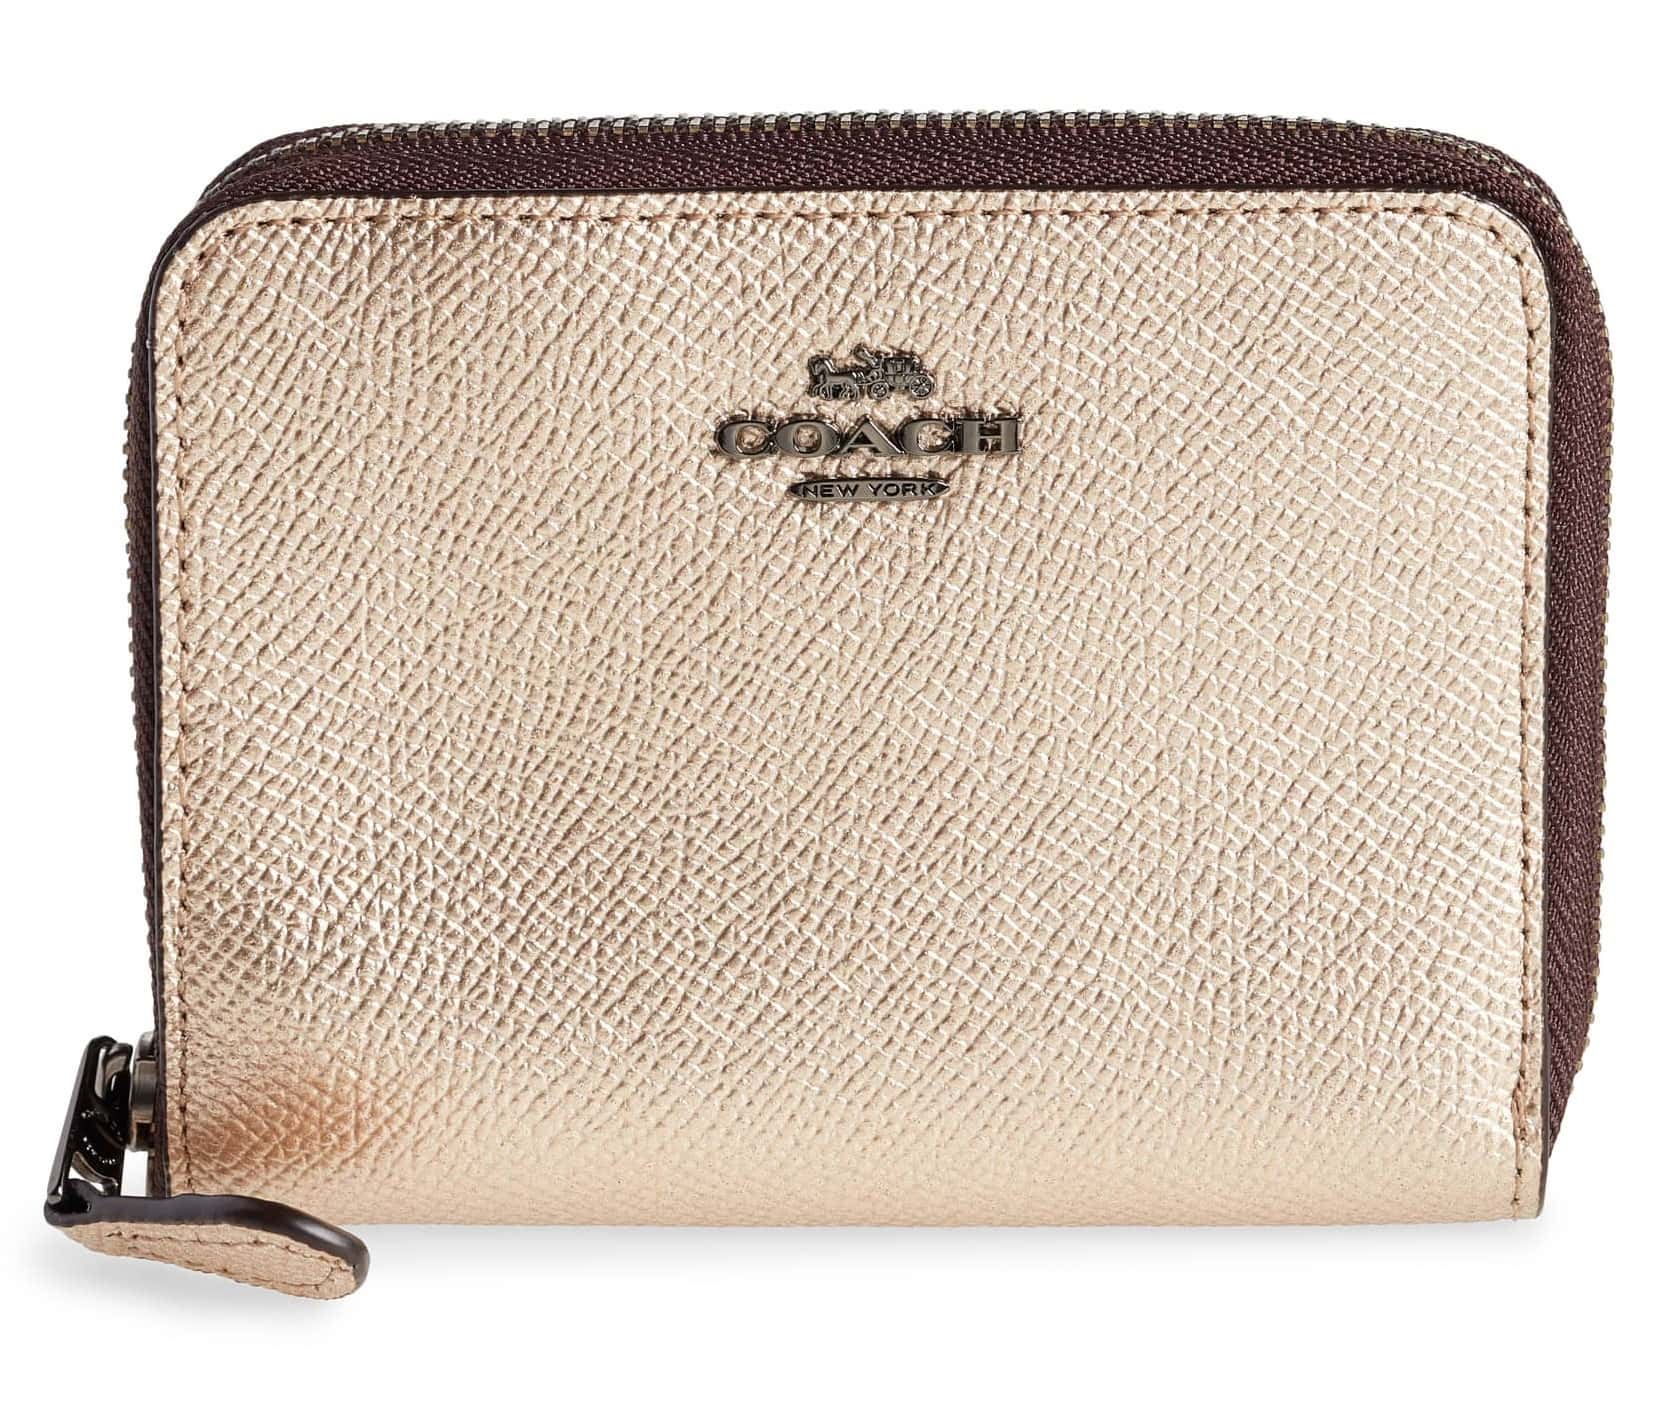 COACH Small Metallic Leather Zip Around Wallet